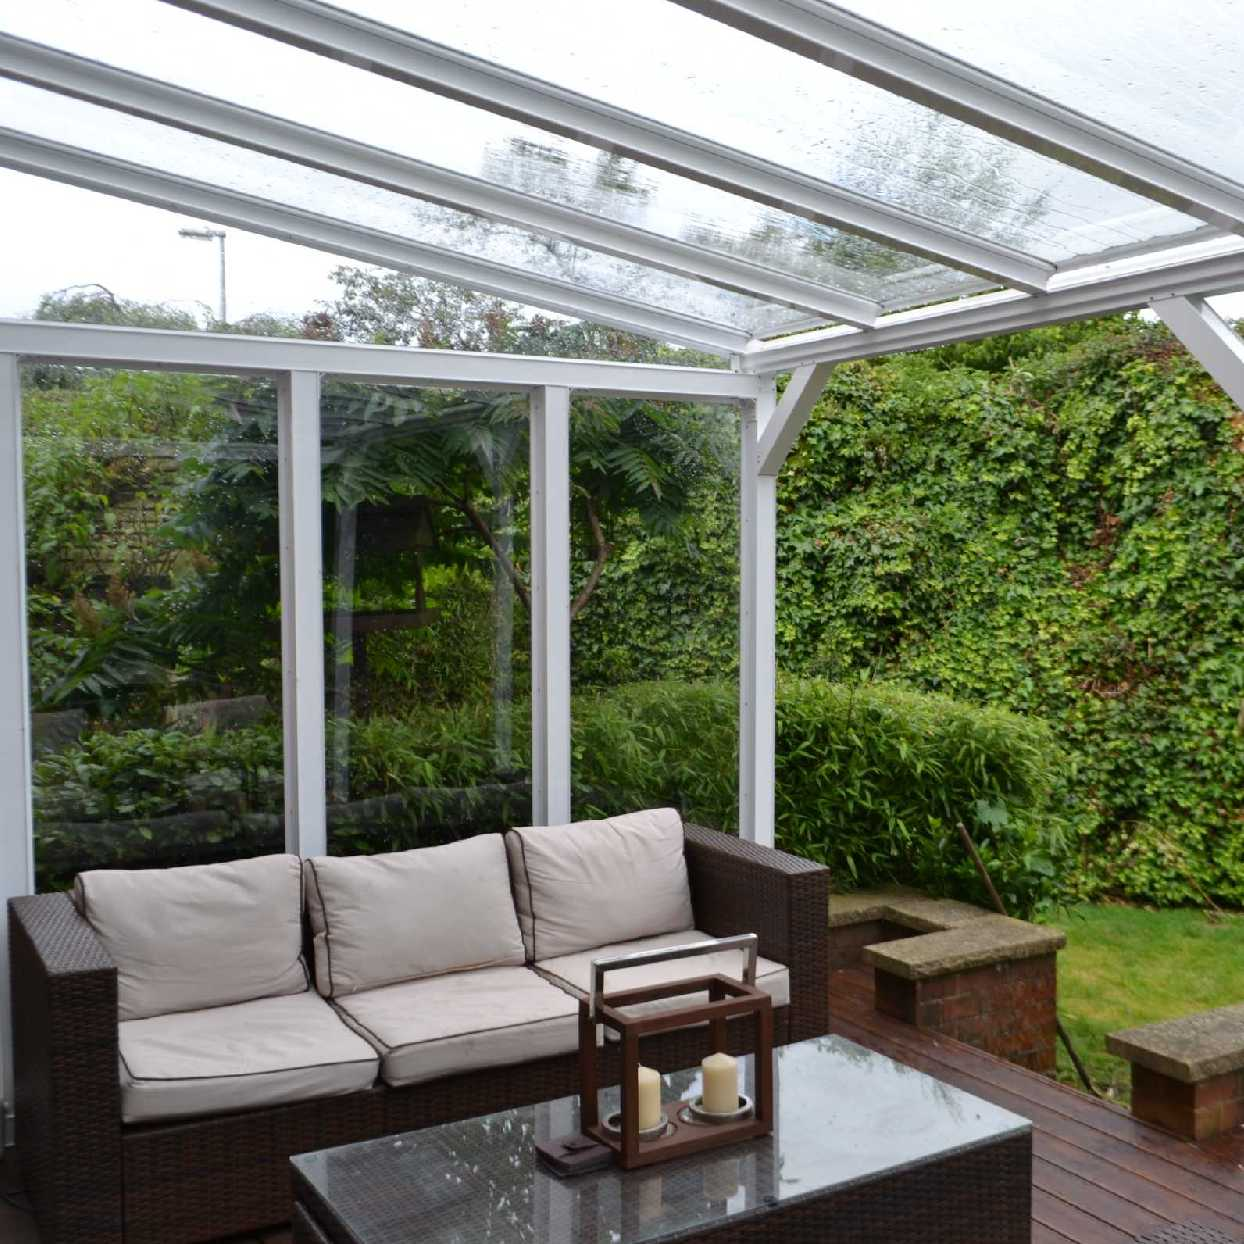 Omega Smart Lean-To Canopy UNGLAZED for 6mm Glazing - 5.6m (W) x 3.5m (P), (3) Supporting Posts